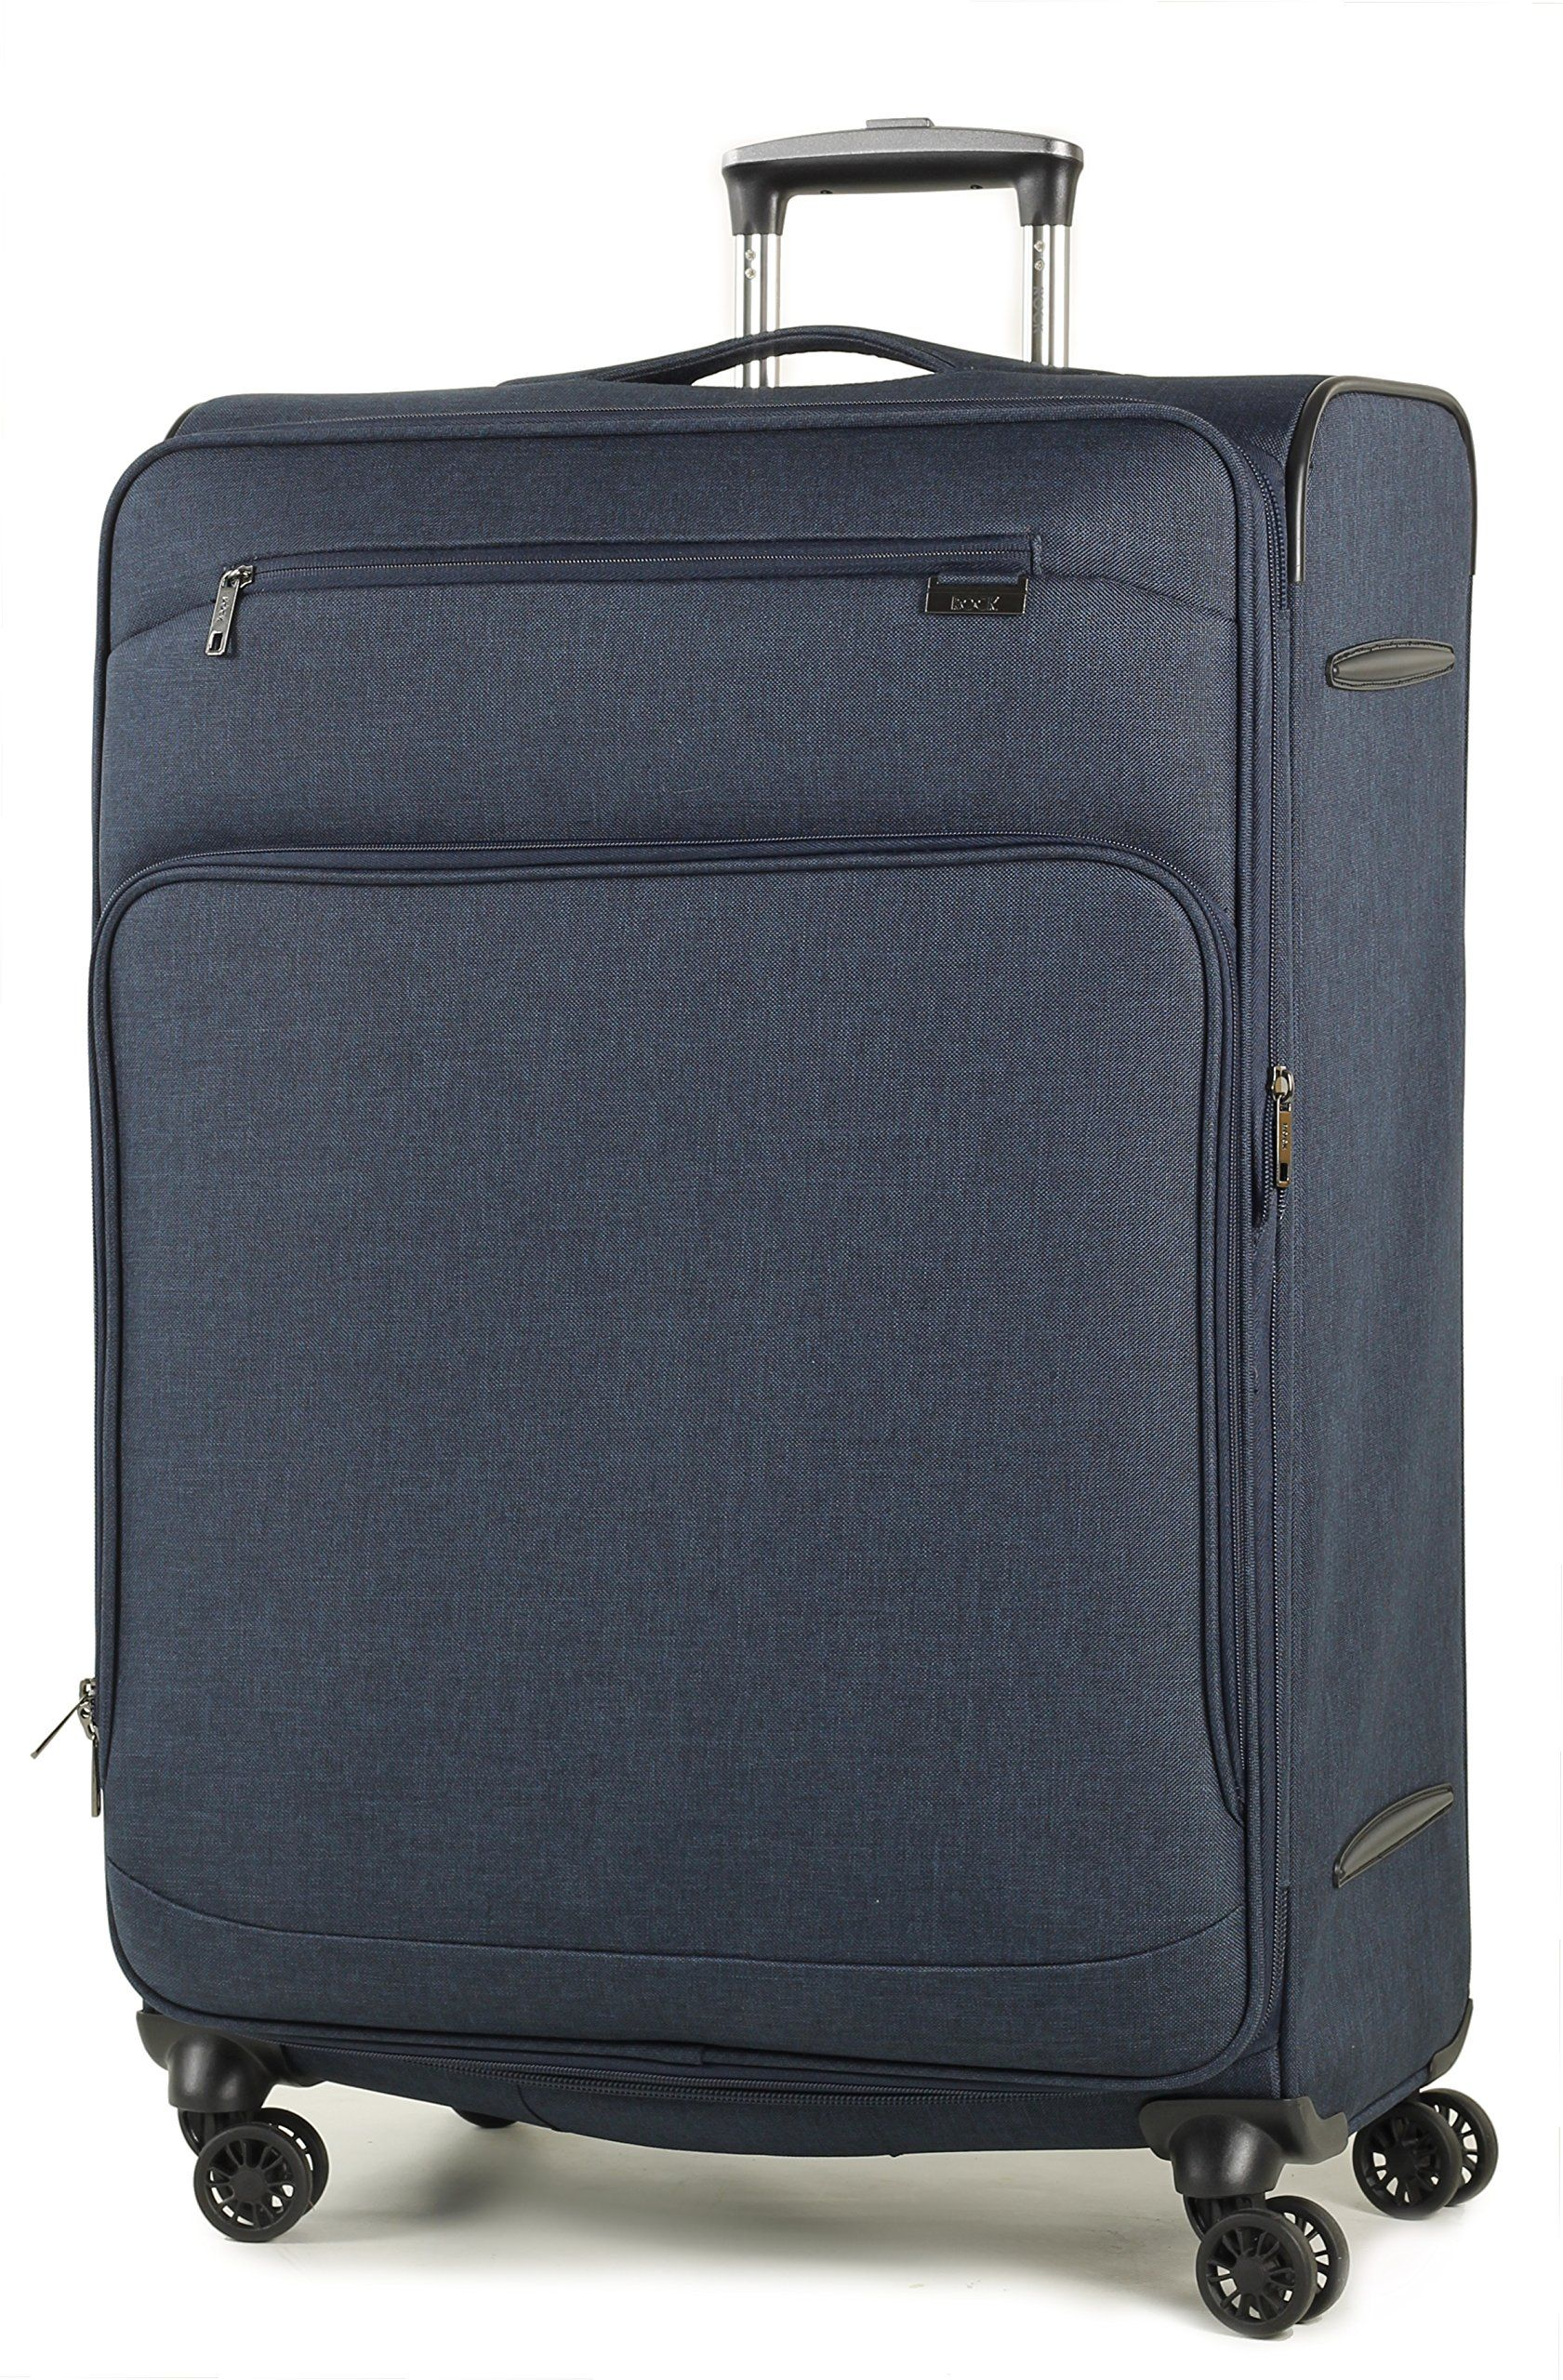 Lightweight Cabin Luggage Rock Madison Lightweight British Airways Cabin Luggage Expandable